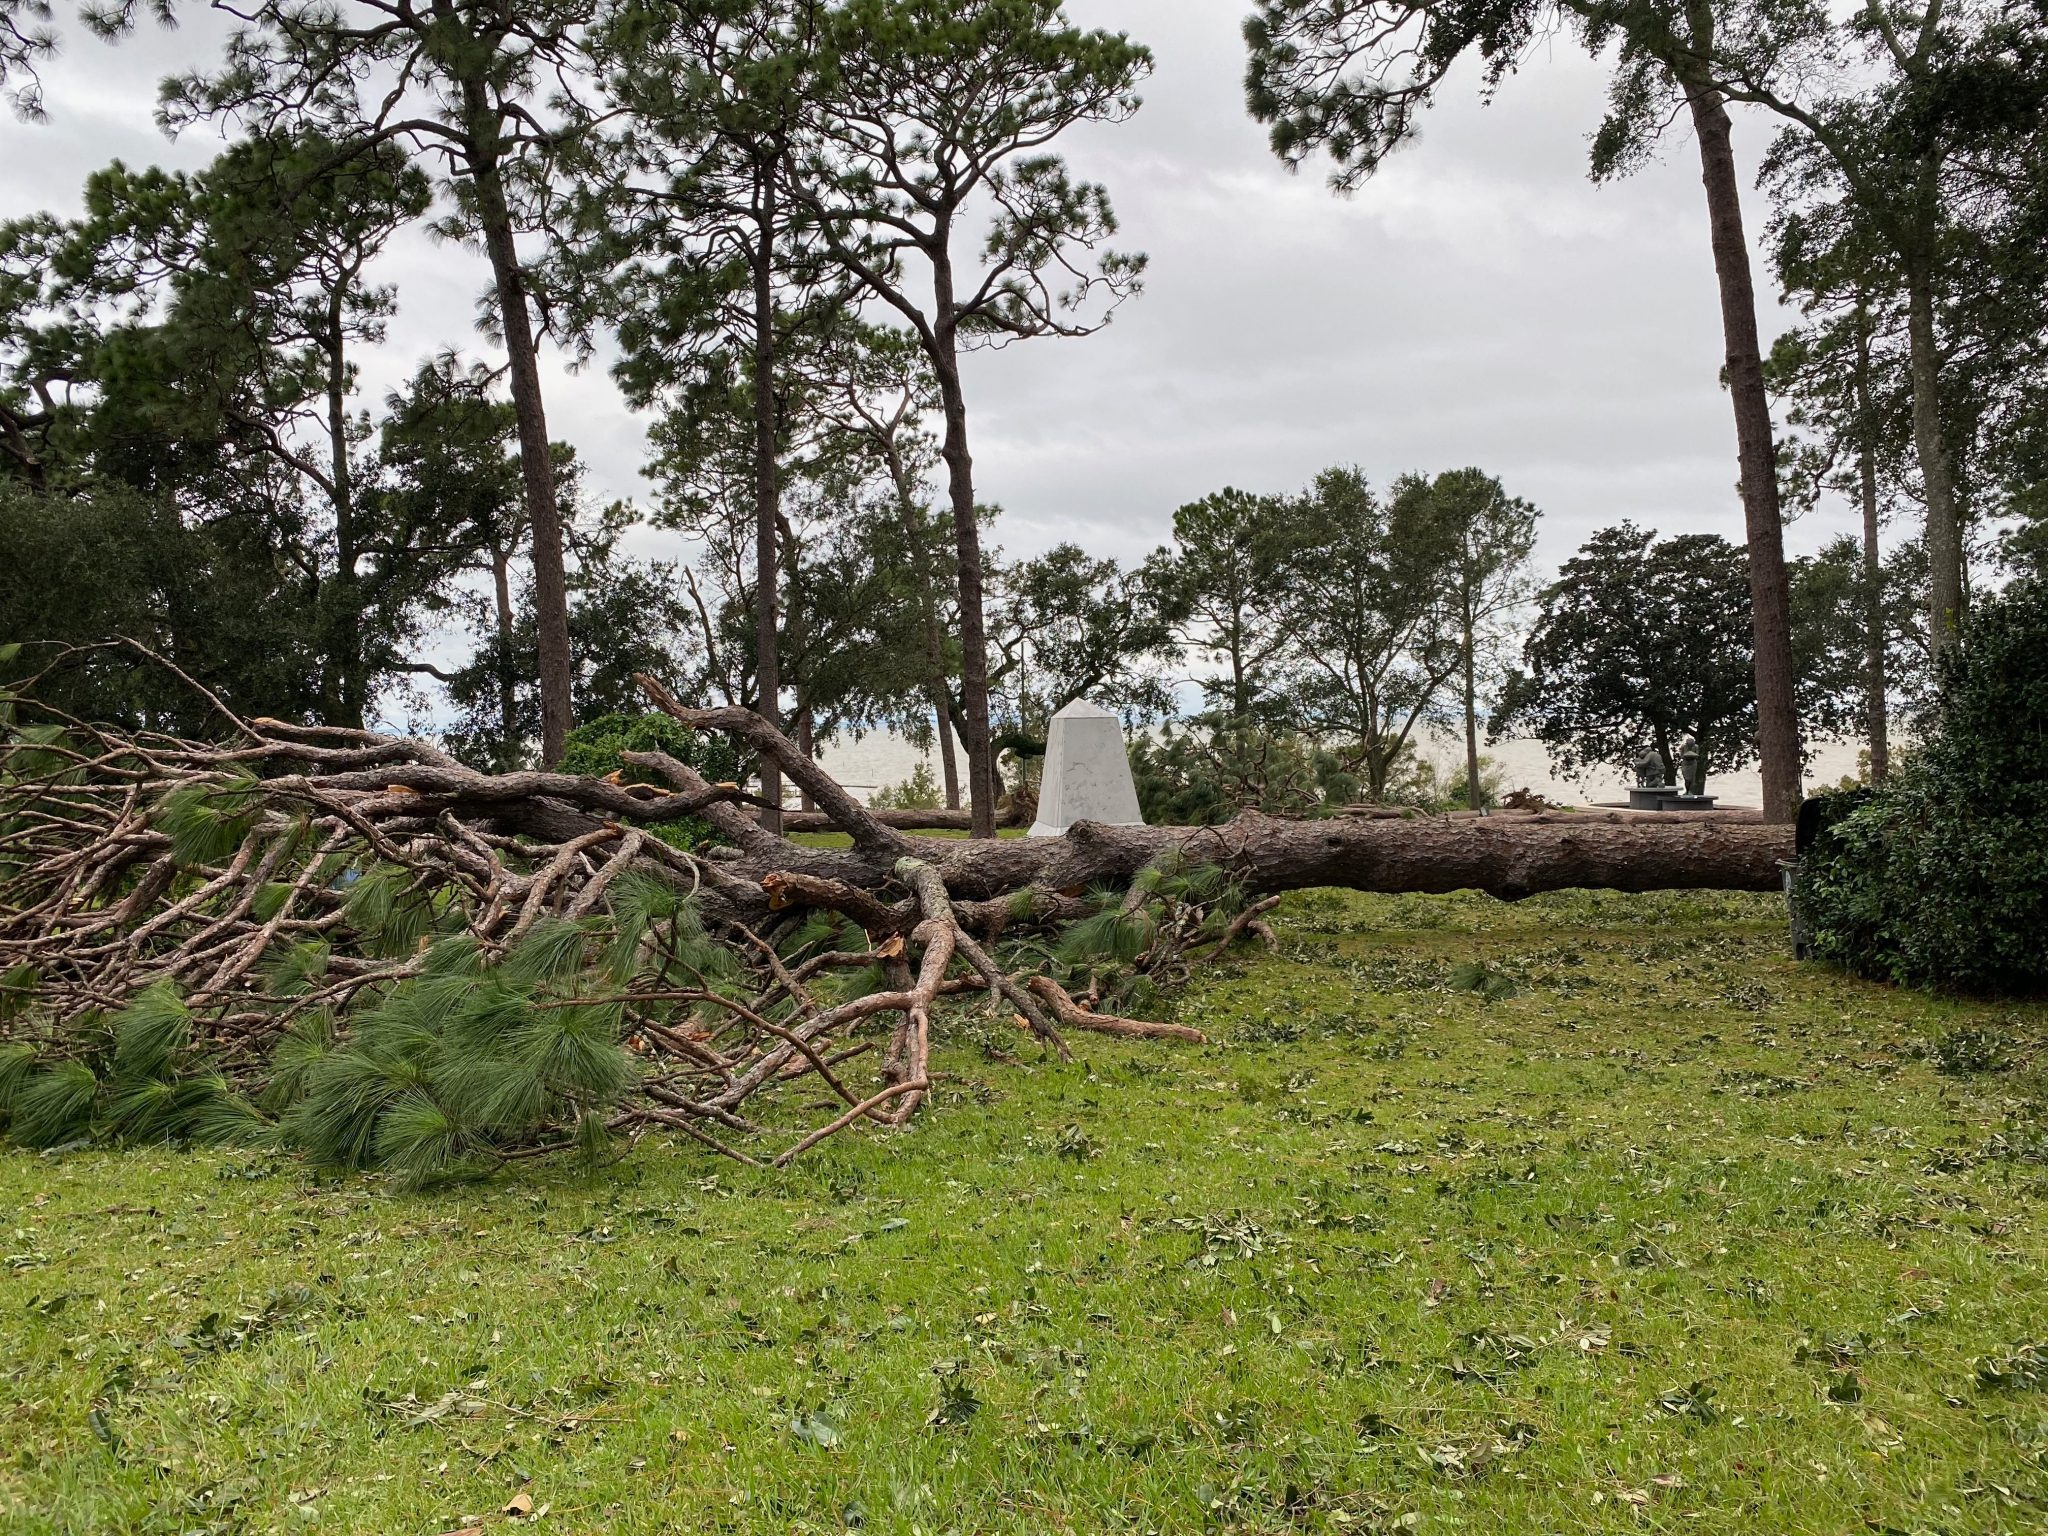 Downed pine trees from Hurricane Sally